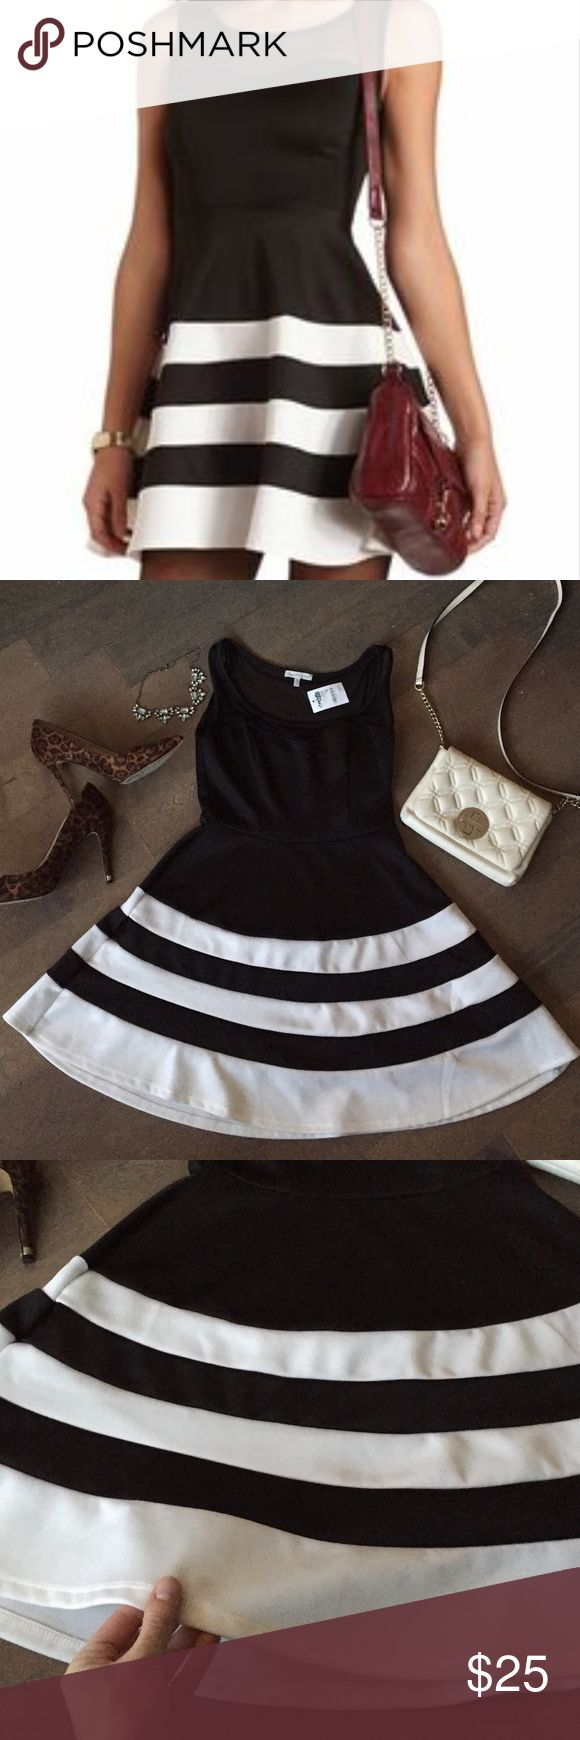 🎄⭐️Sale!⭐️ Black White Striped Dress! BRAND NEW WITH TAGS! ⭐️💕 Gorgeous black and white striped dress! Has sheer neckline and shoulder straps for a flirty look! Perfect for the holidays 🎄🍷⭐️ Size medium. Charlotte Russe Dresses